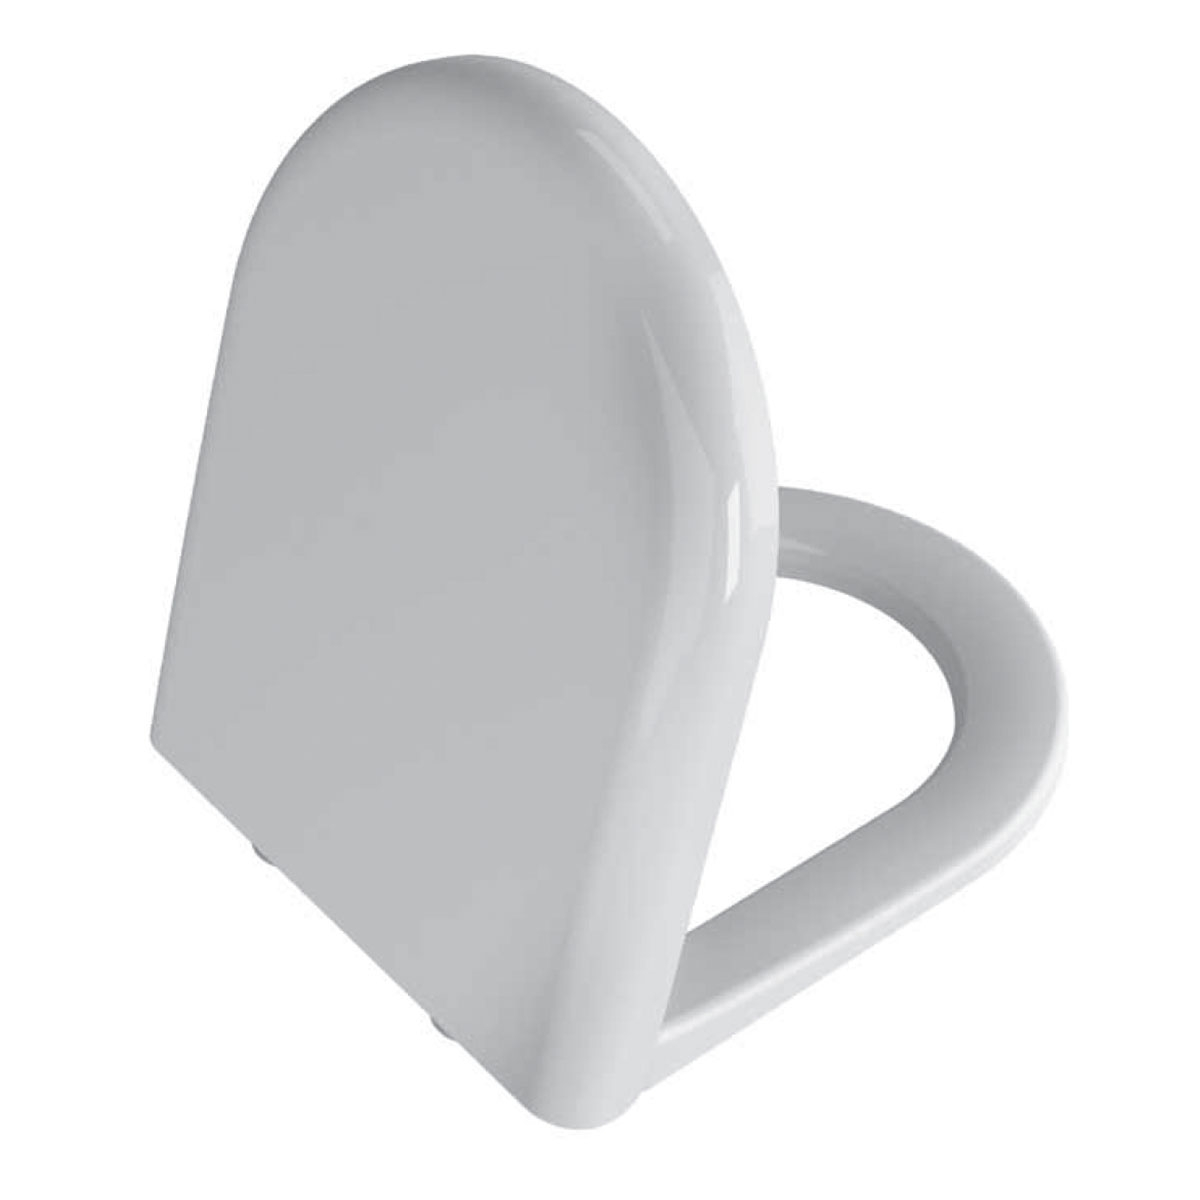 VitrA Zentrum Bathroom Cloakroom Suite Close Coupled Toilet 1 Tap Hole Basin - Soft Close Seat-2